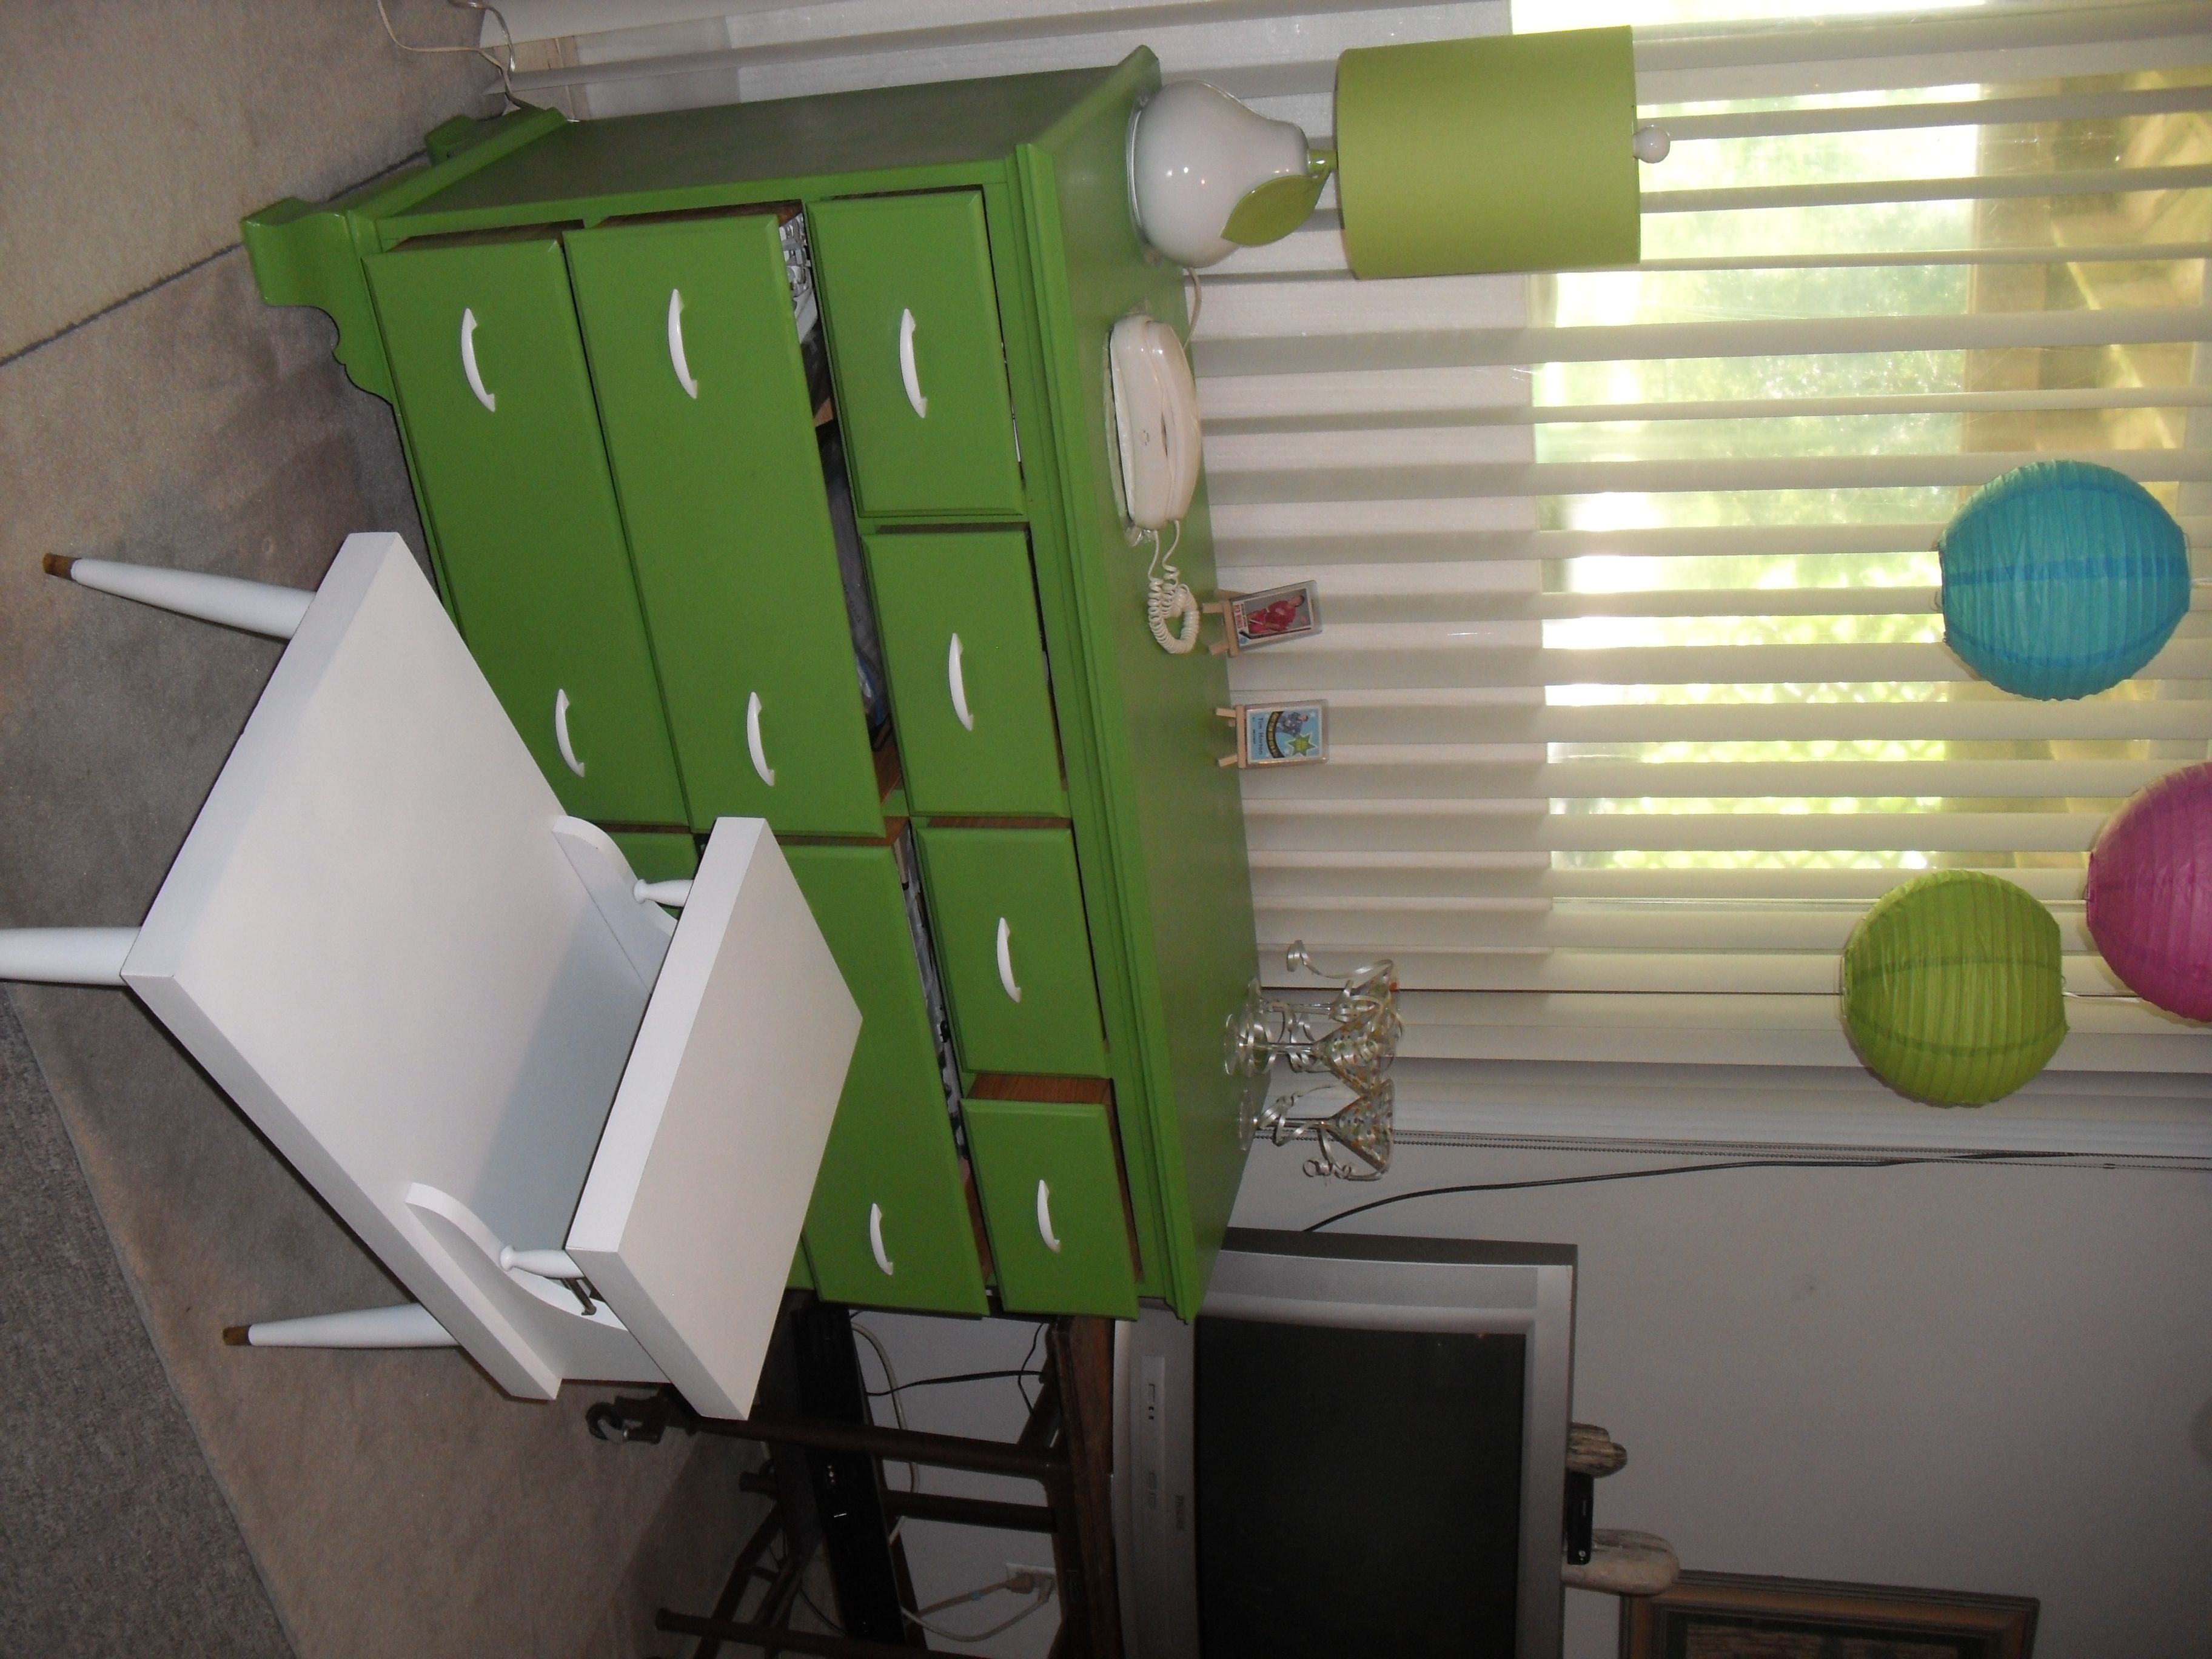 used Valspar spray paint for the green dresser.  Love the color!!